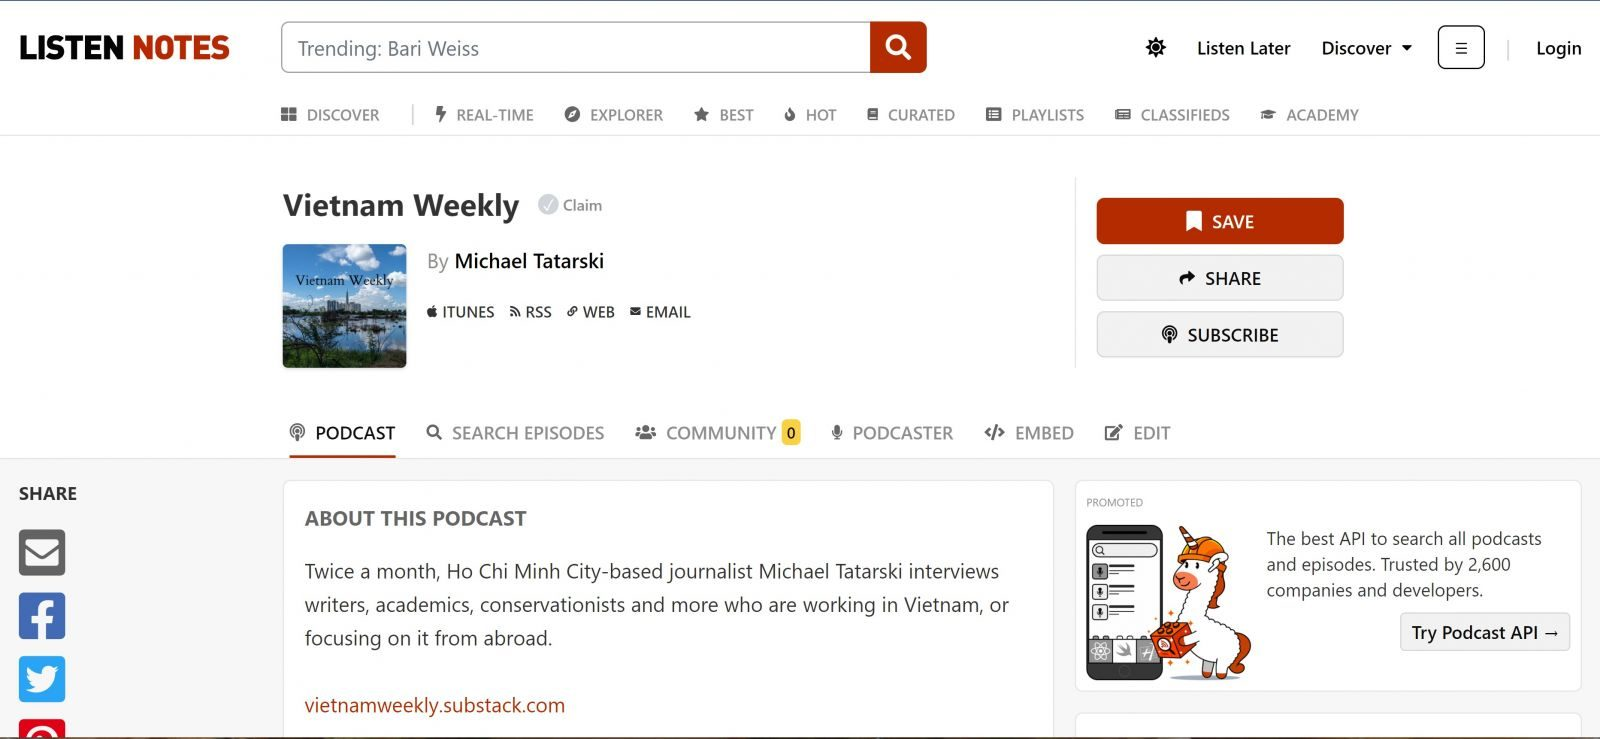 Vietnam Weekly podcast page